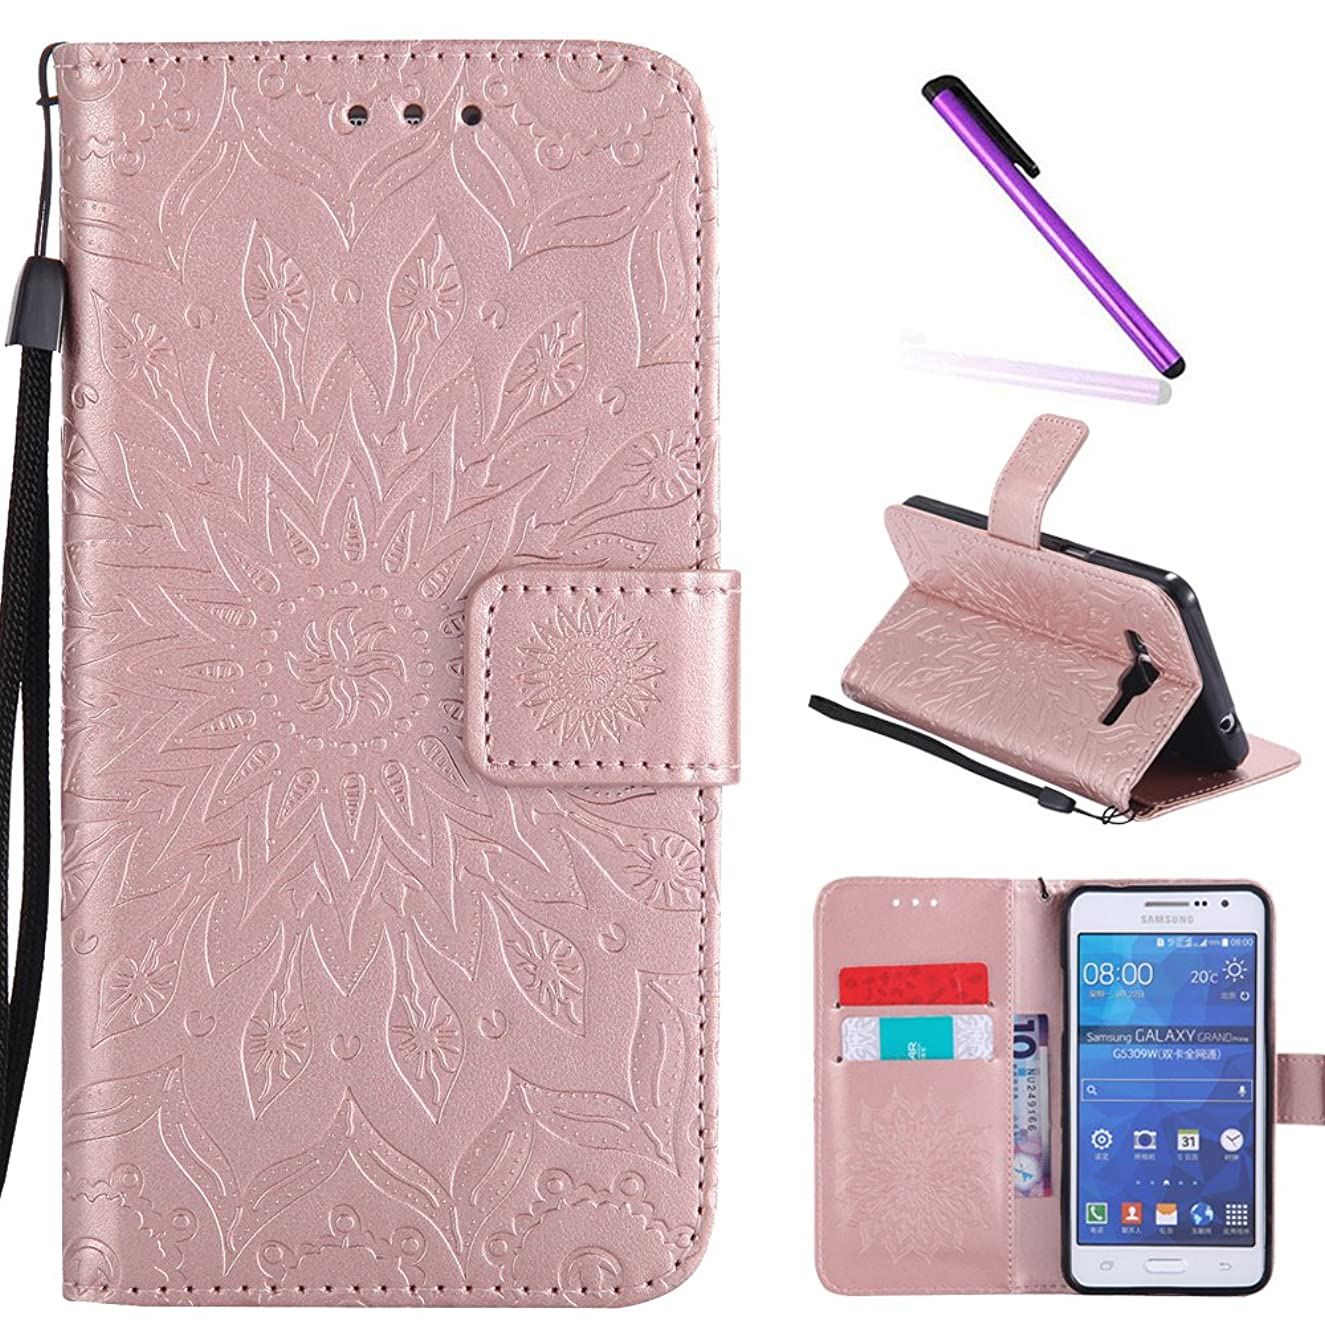 Galaxy Grand Prime Case,G530 Case,LEECOCO Fancy Embossed Floral Wallet Case with Card / Cash Slots PU Leather Flip Stand Case for Samsung Galaxy Grand Prime LTE G530 Mandala Rose Gold